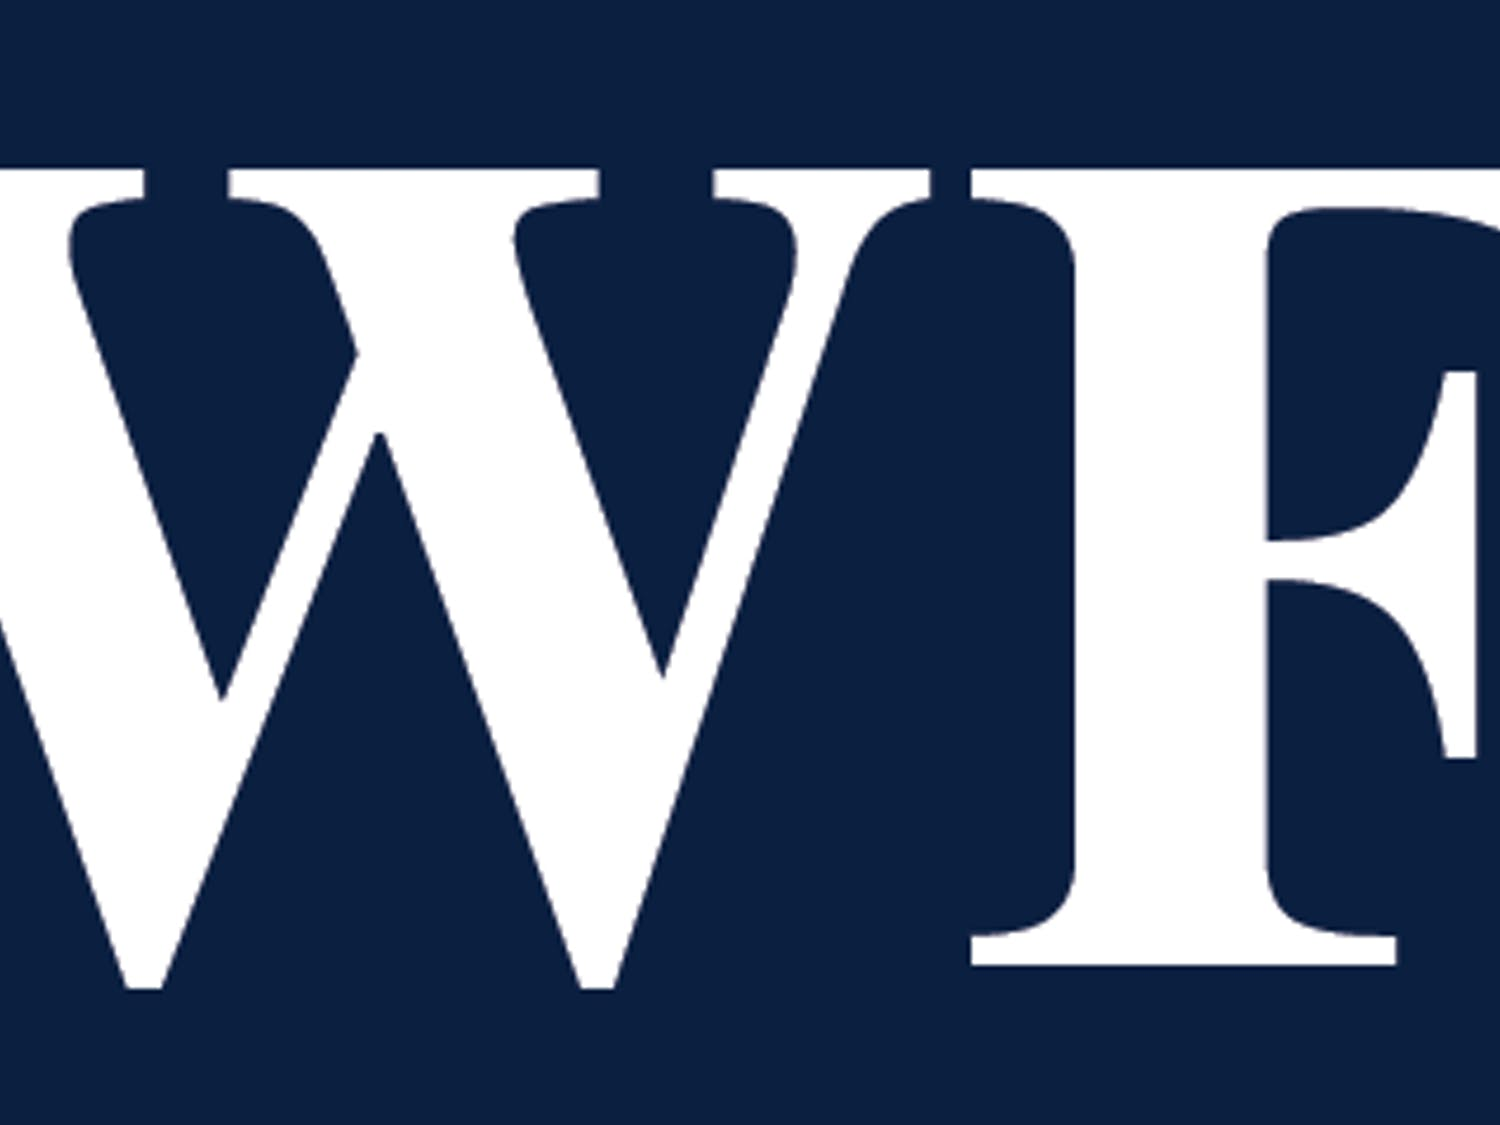 Logo-with-shade-of-Western-blue-e1517963625869